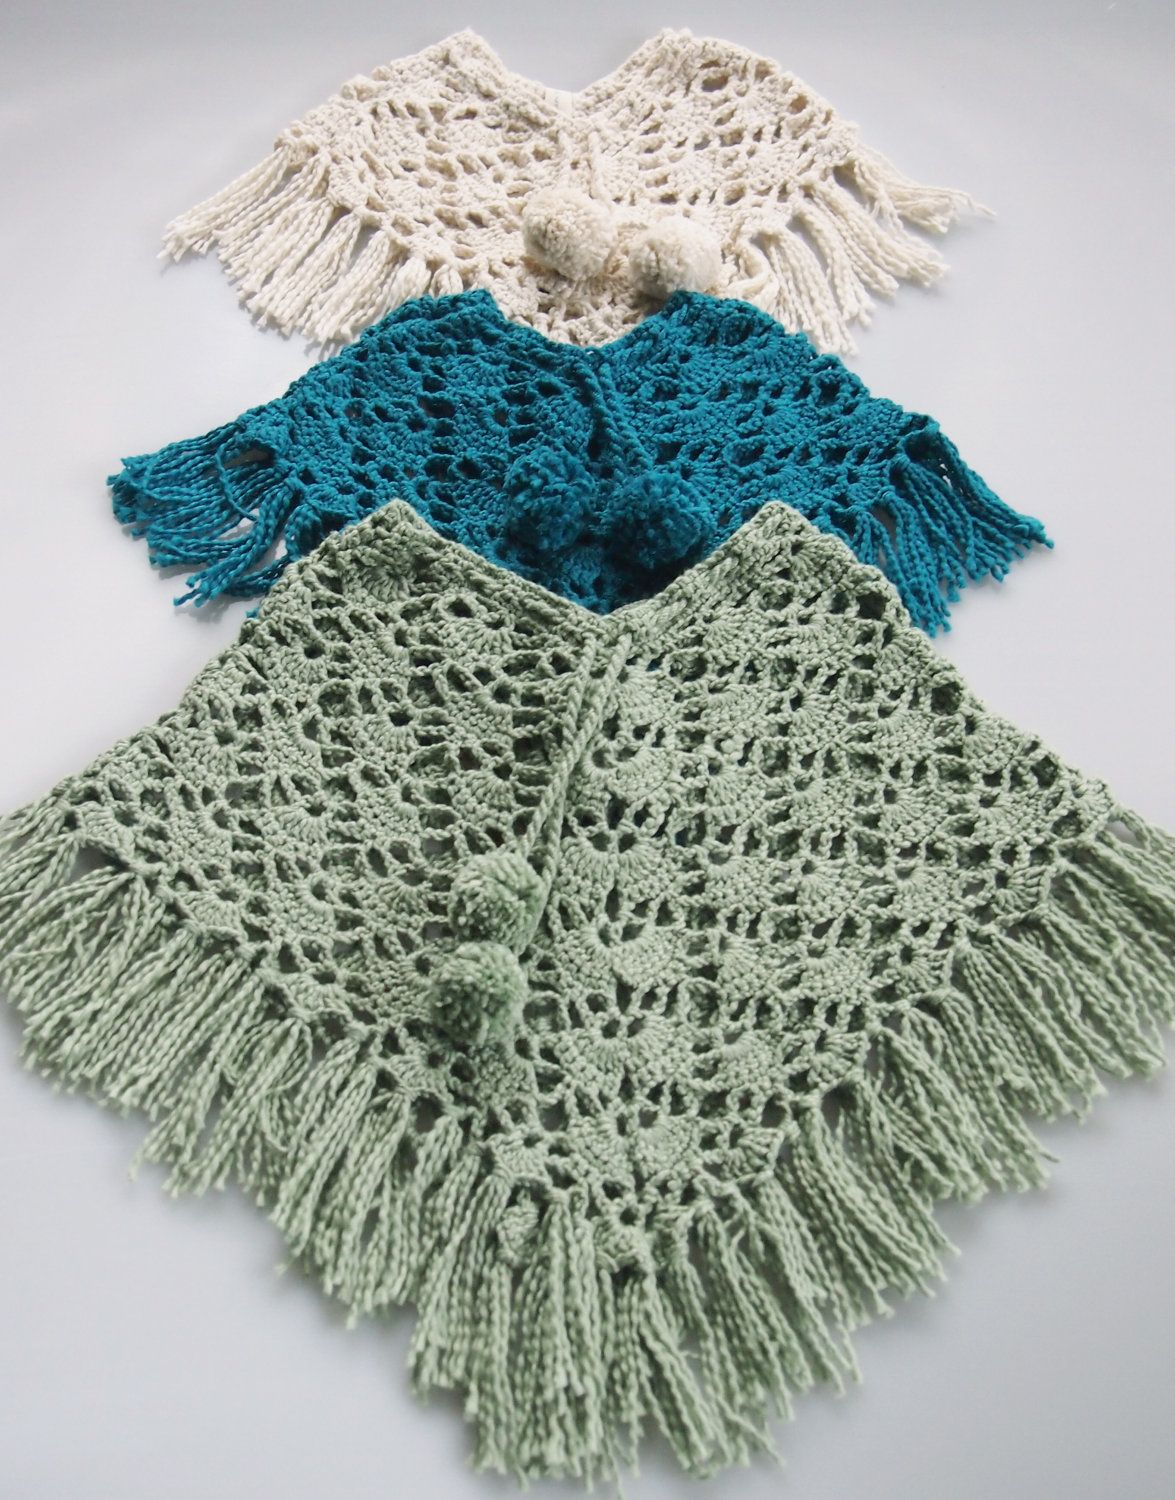 Stunning Hand Crocheted Organic Cotton Baby Poncho With Pom Poms